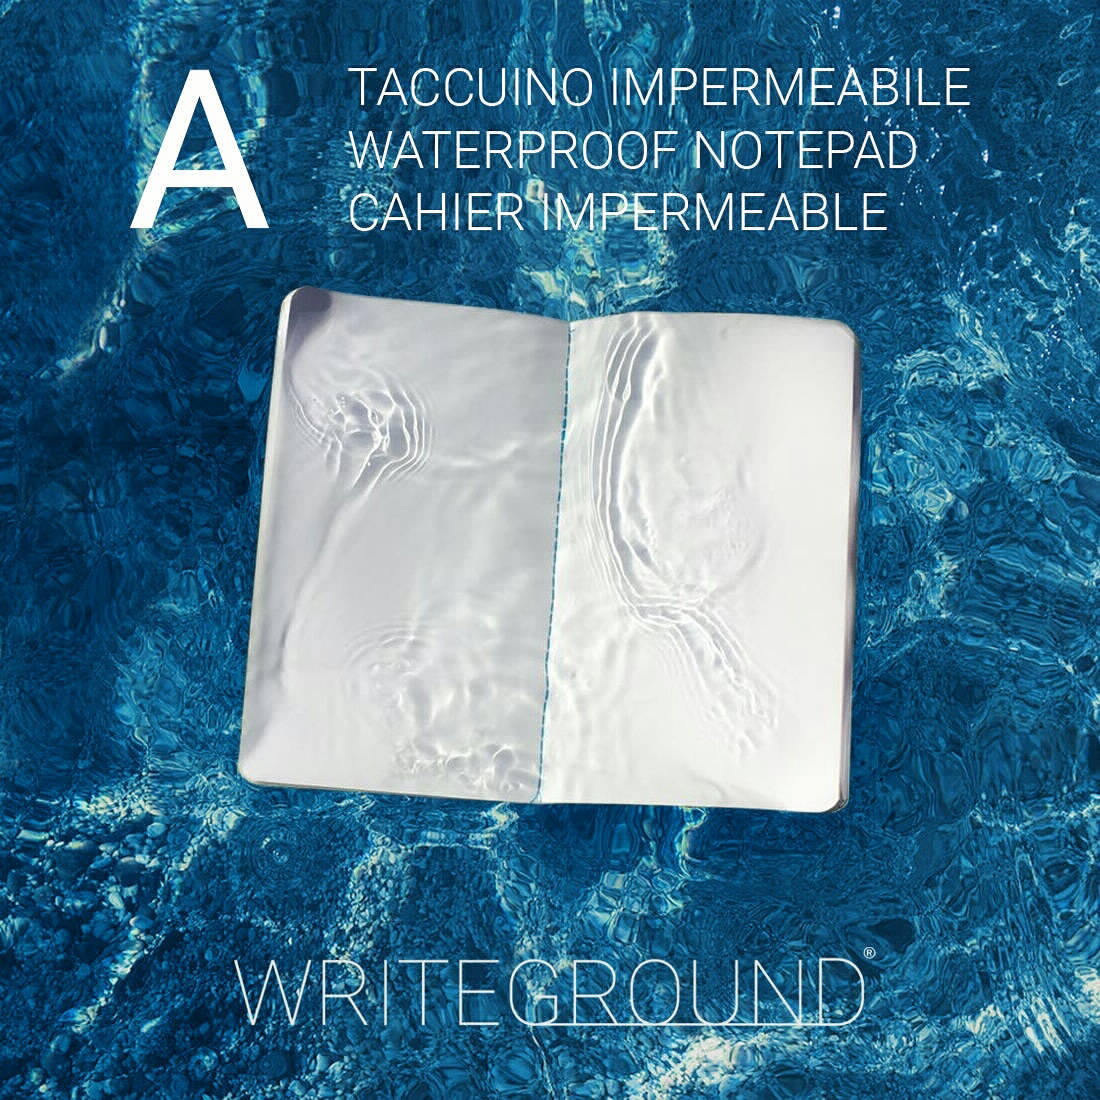 A, quaderno impermeabile, all-weather, waterproof, water resistant, paperbook, notepad, notebook, stationery, cartoleria, innovation, innovative design, italian design, イタリア人デザイナー